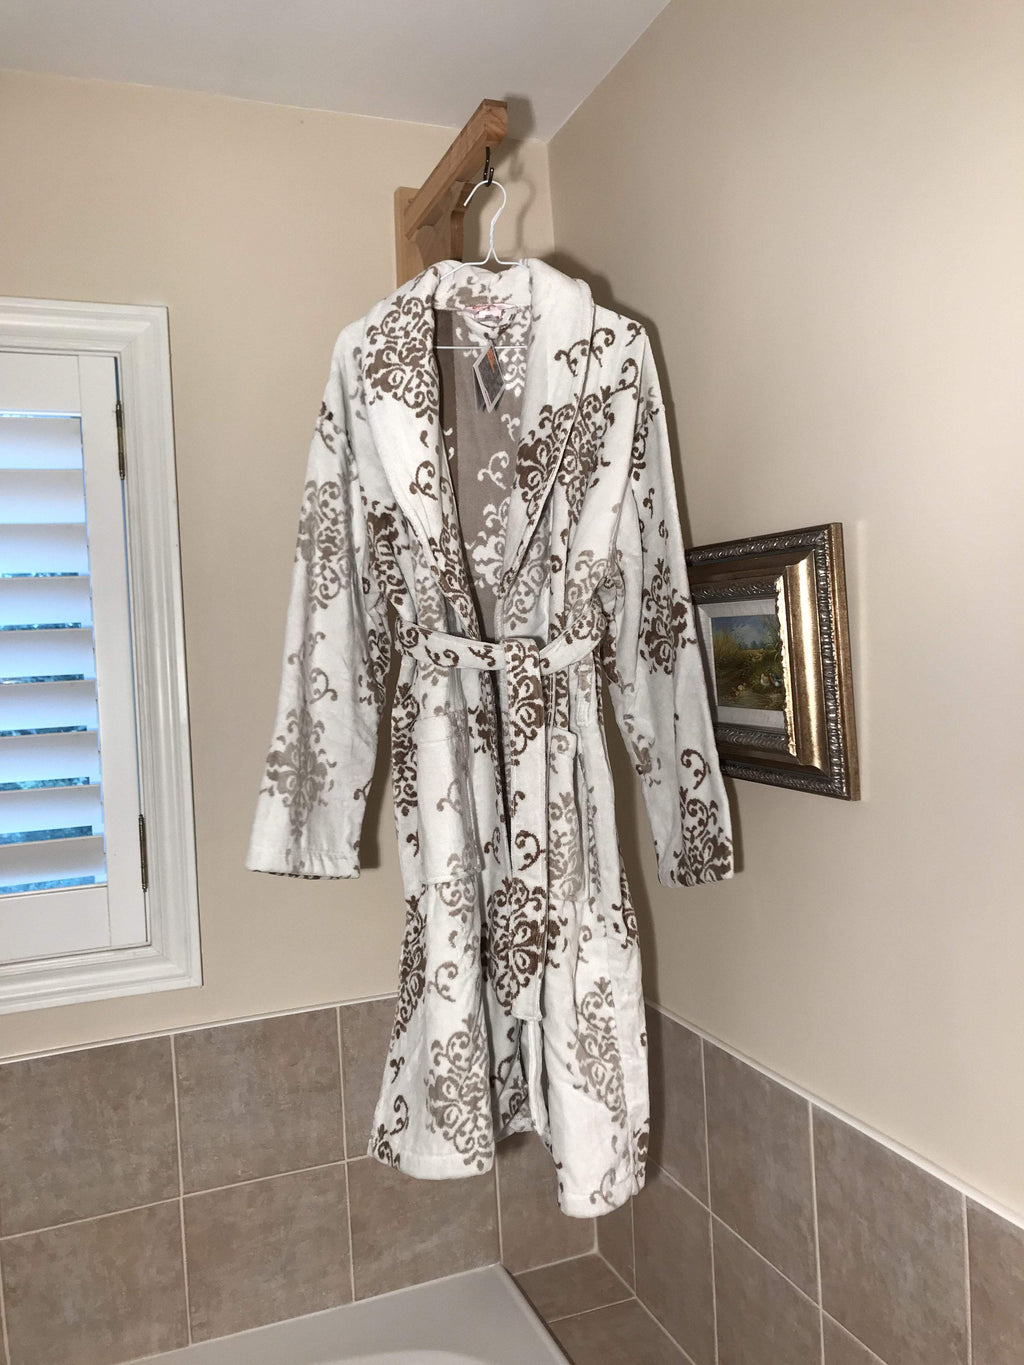 BATHROBE TOWEL - COTTONISH